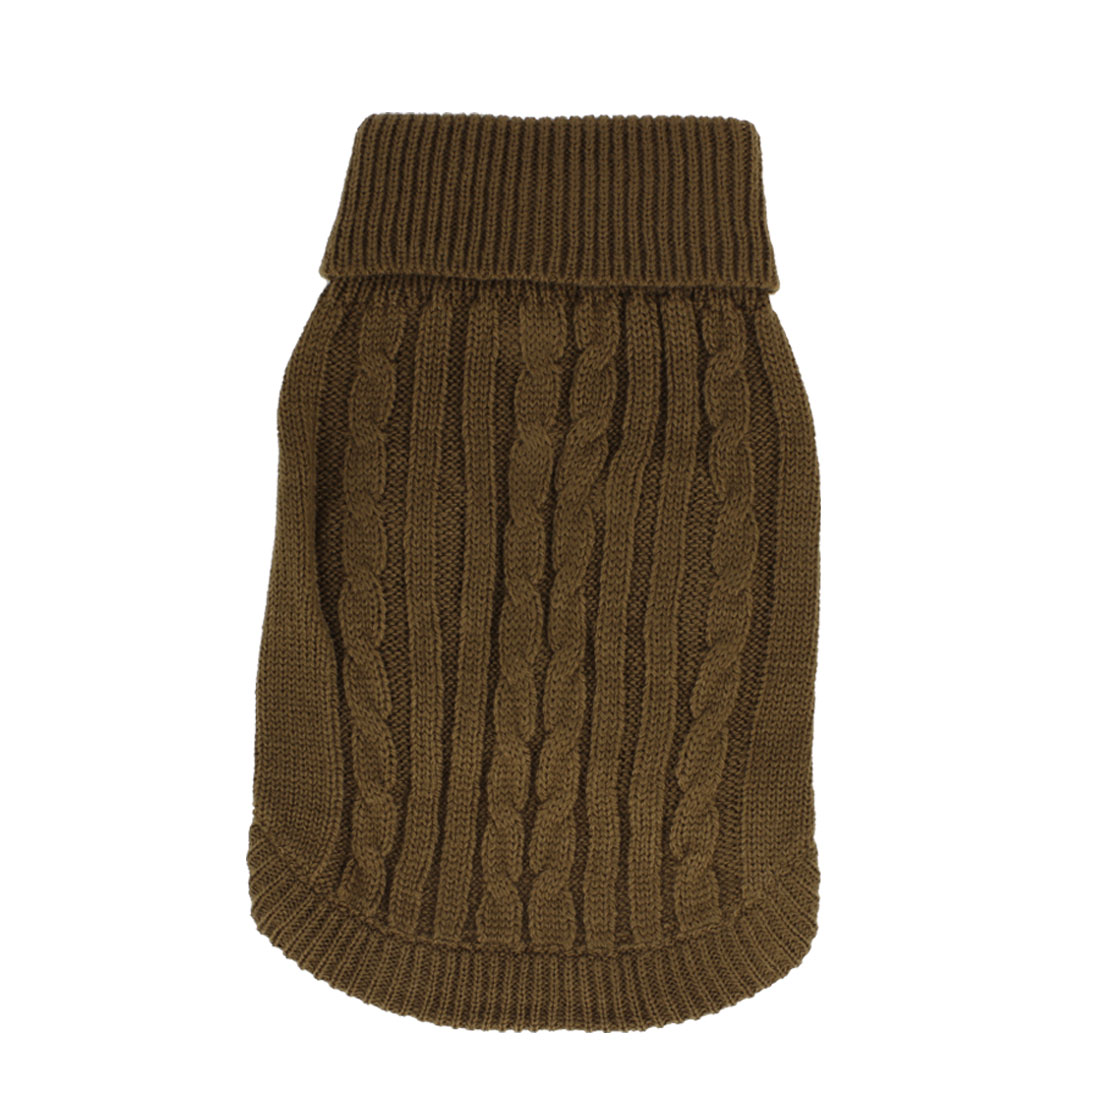 Pet Dog Doggy Ribbed Cuff Twisted Knitwear Turtleneck Apparel Sweater Coffee Color Size M